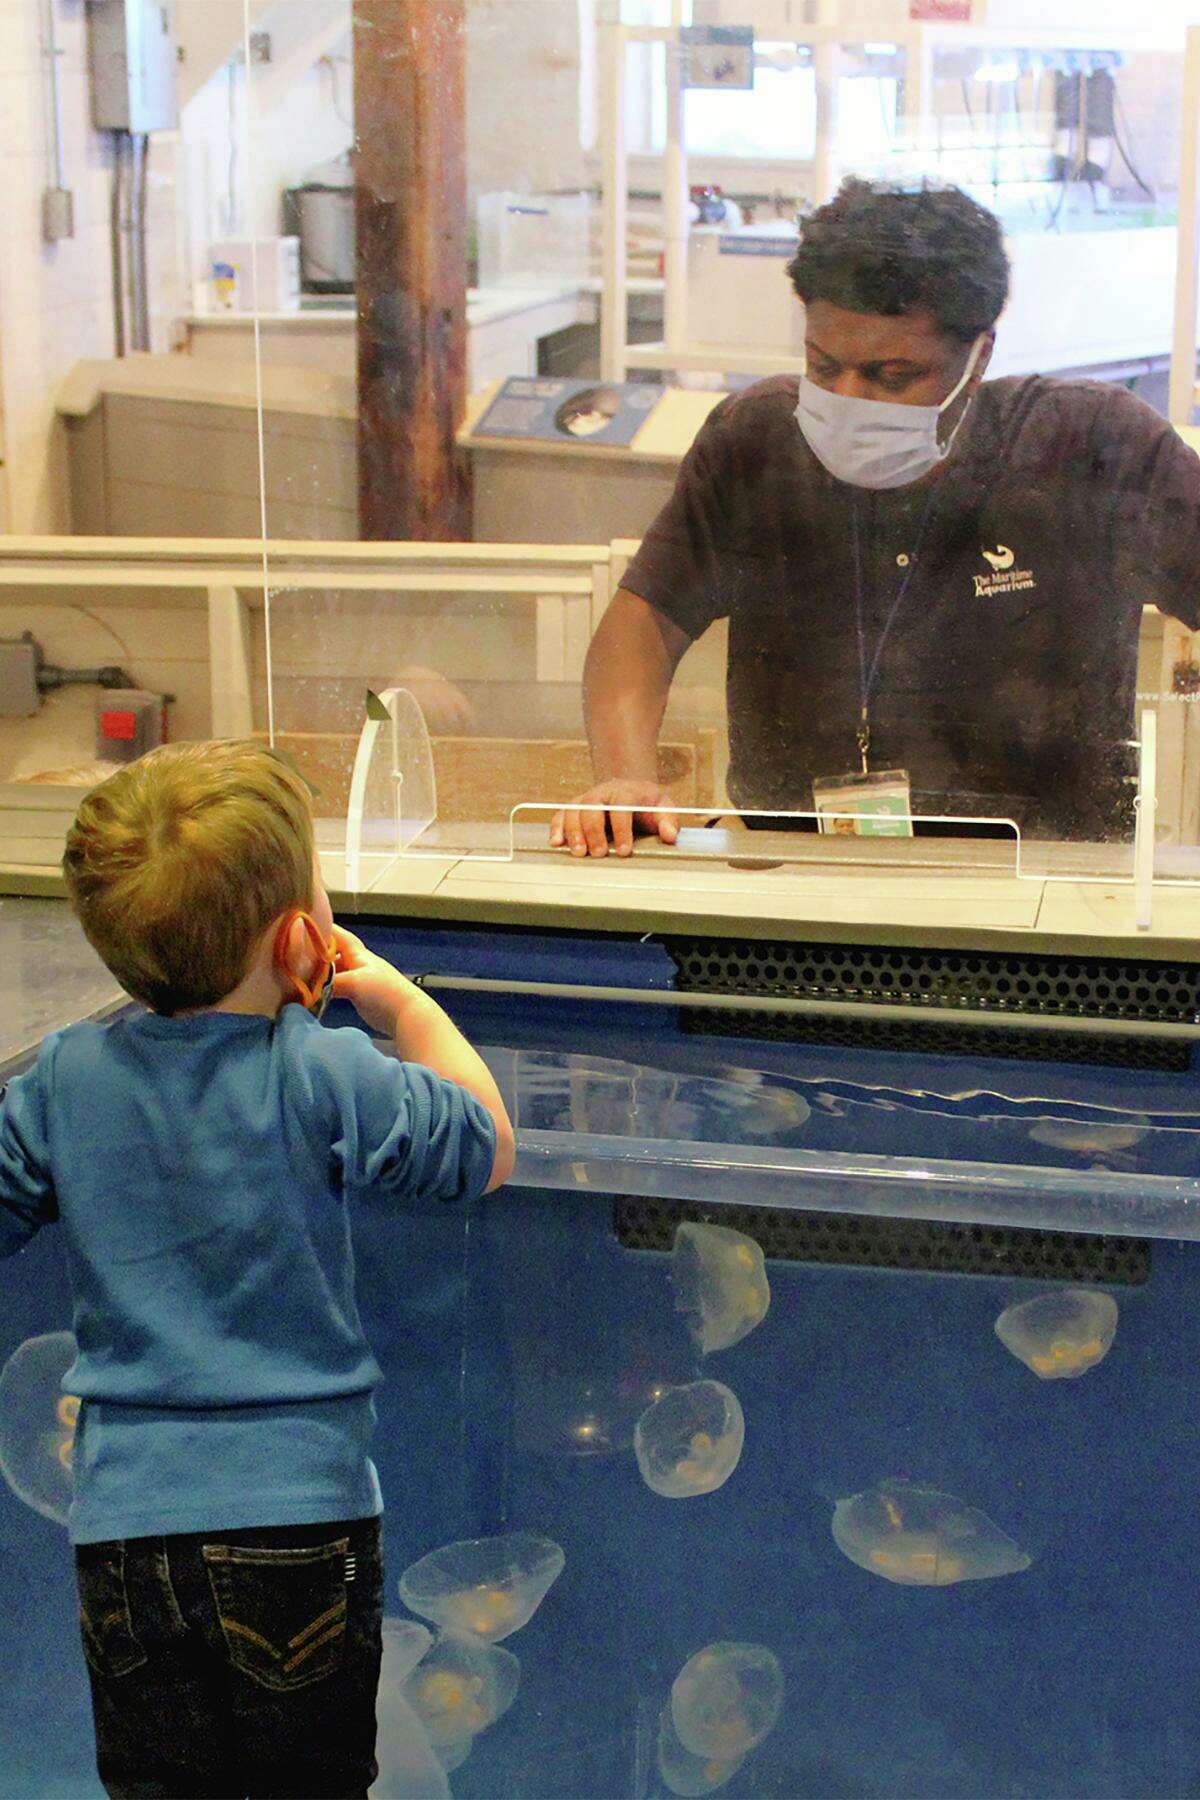 NORWALK, CT - Registration is open now for an upcoming training course to become a volunteer at The Maritime Aquarium at Norwalk. Anyone over age 15 can apply to learn how to interpret exhibits - like the